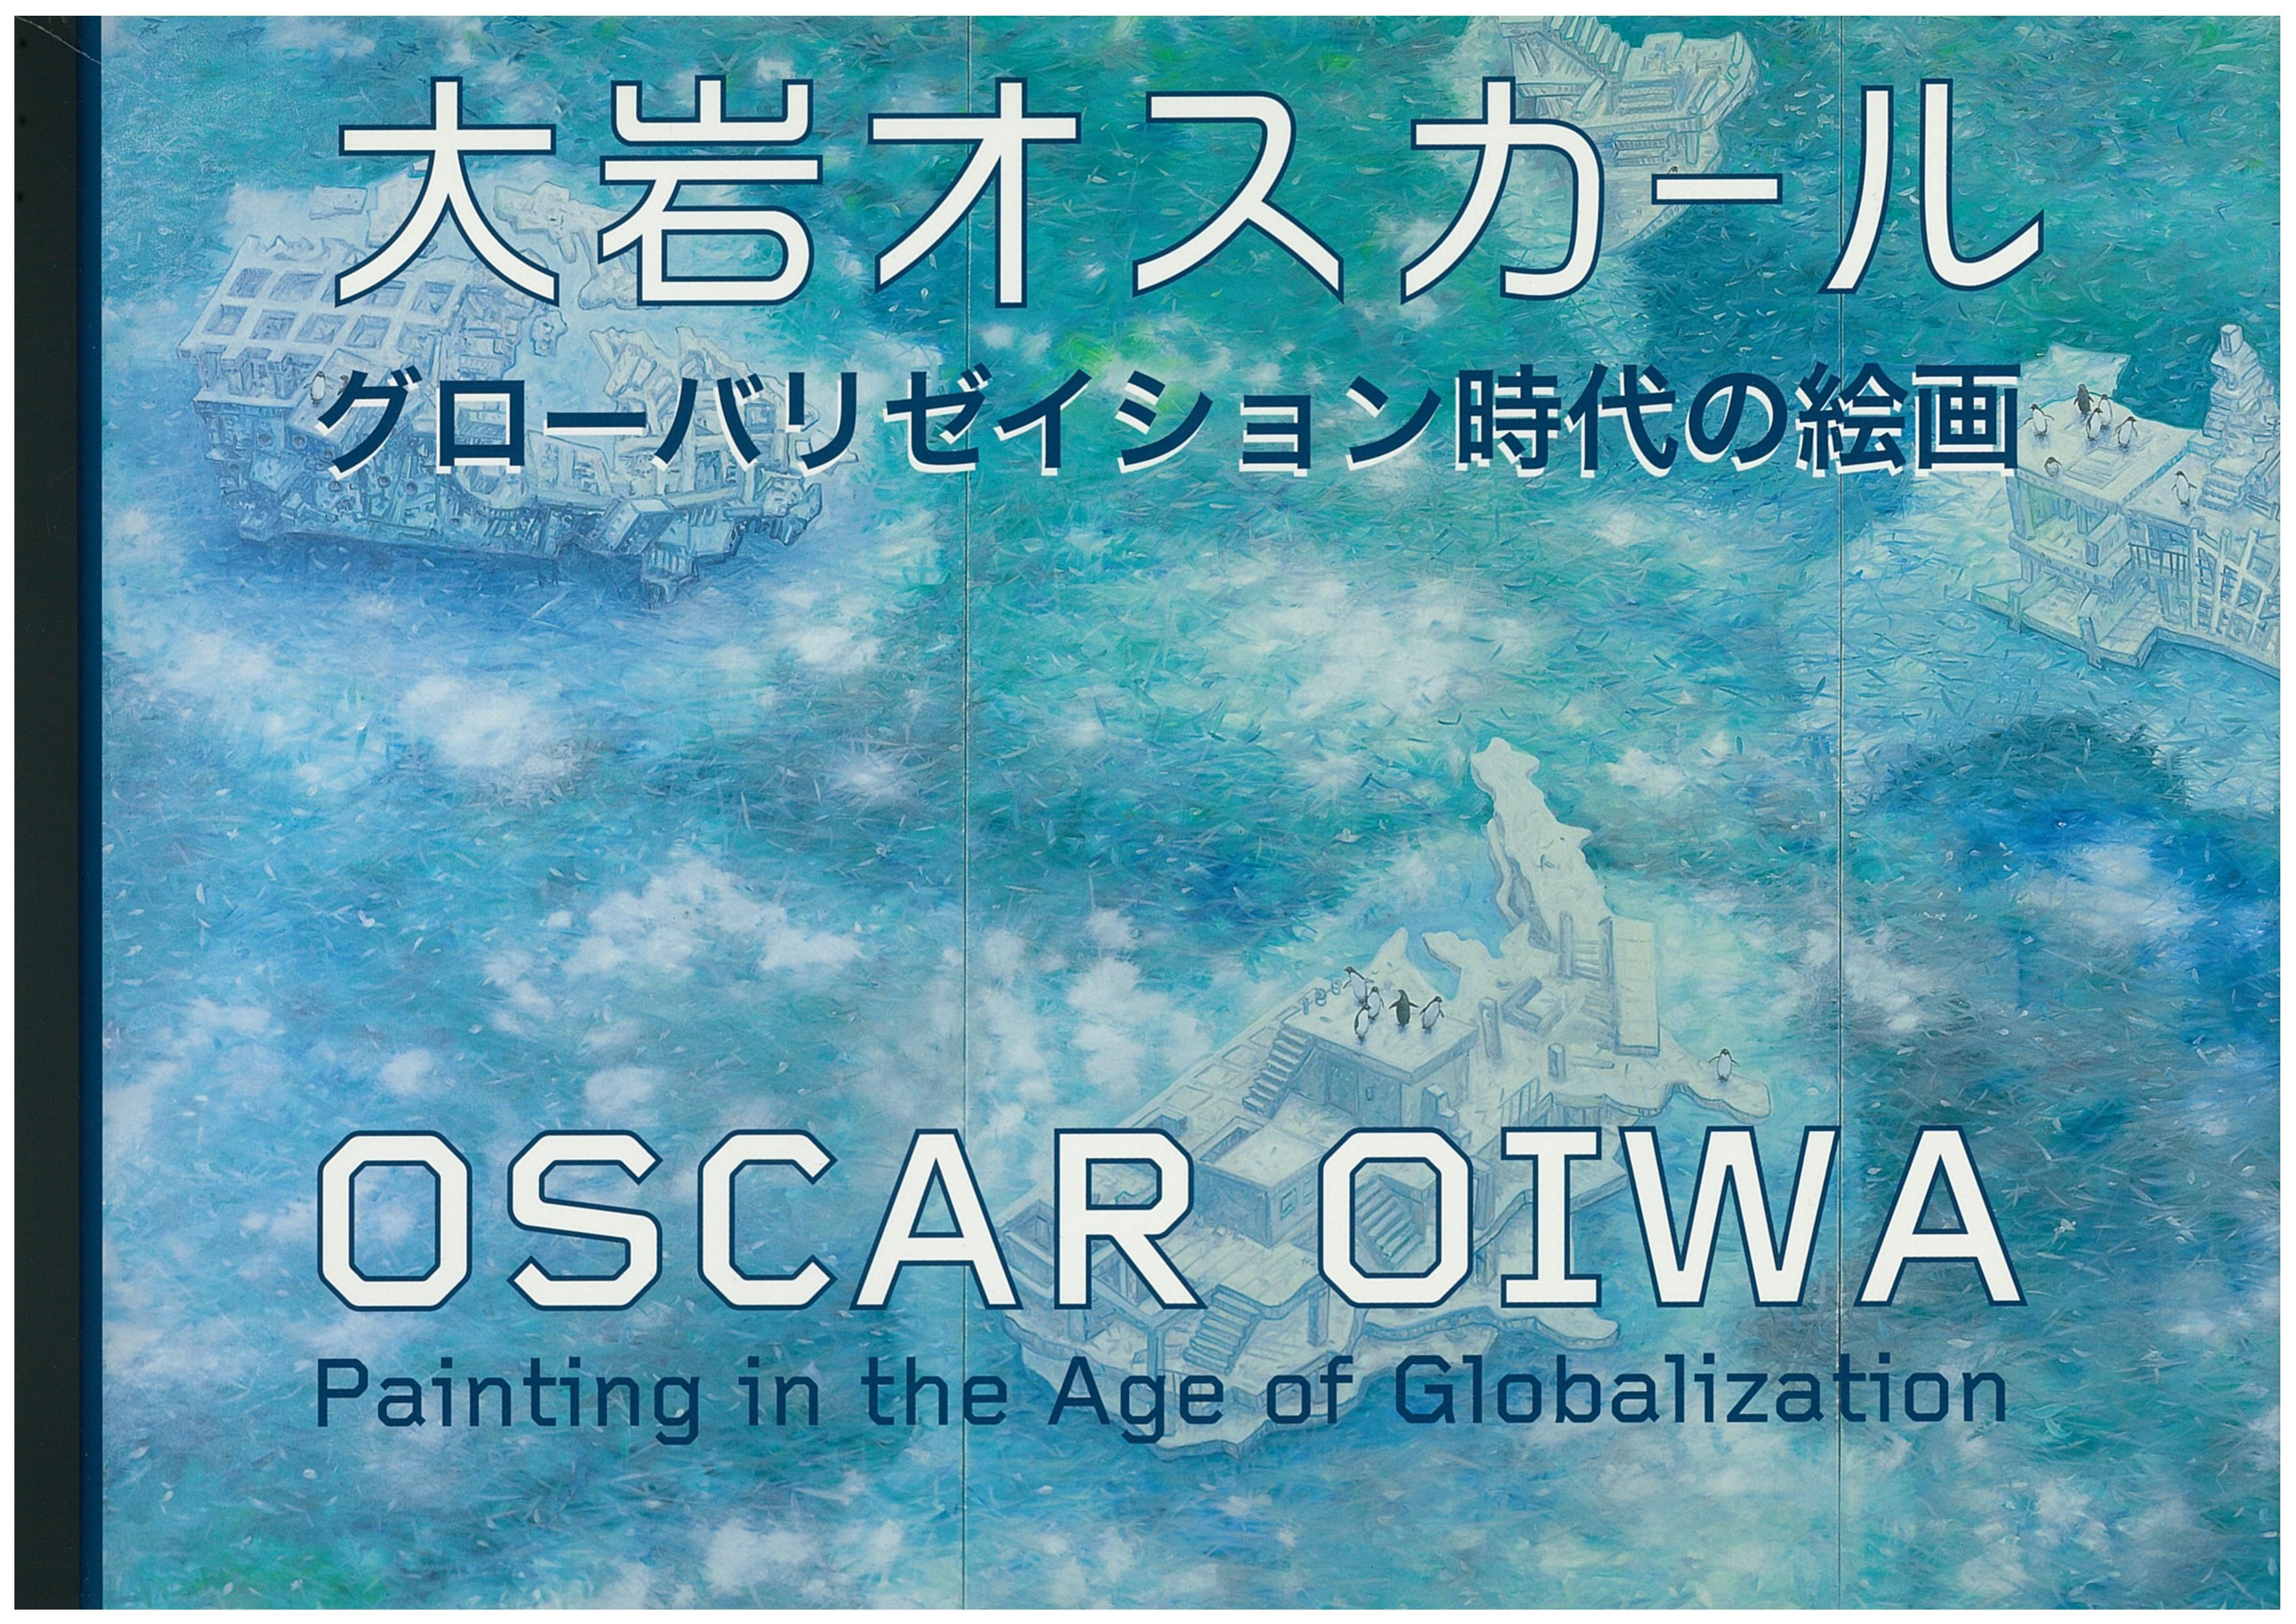 Oscar Oiwa: Painting in the Age of Globalization